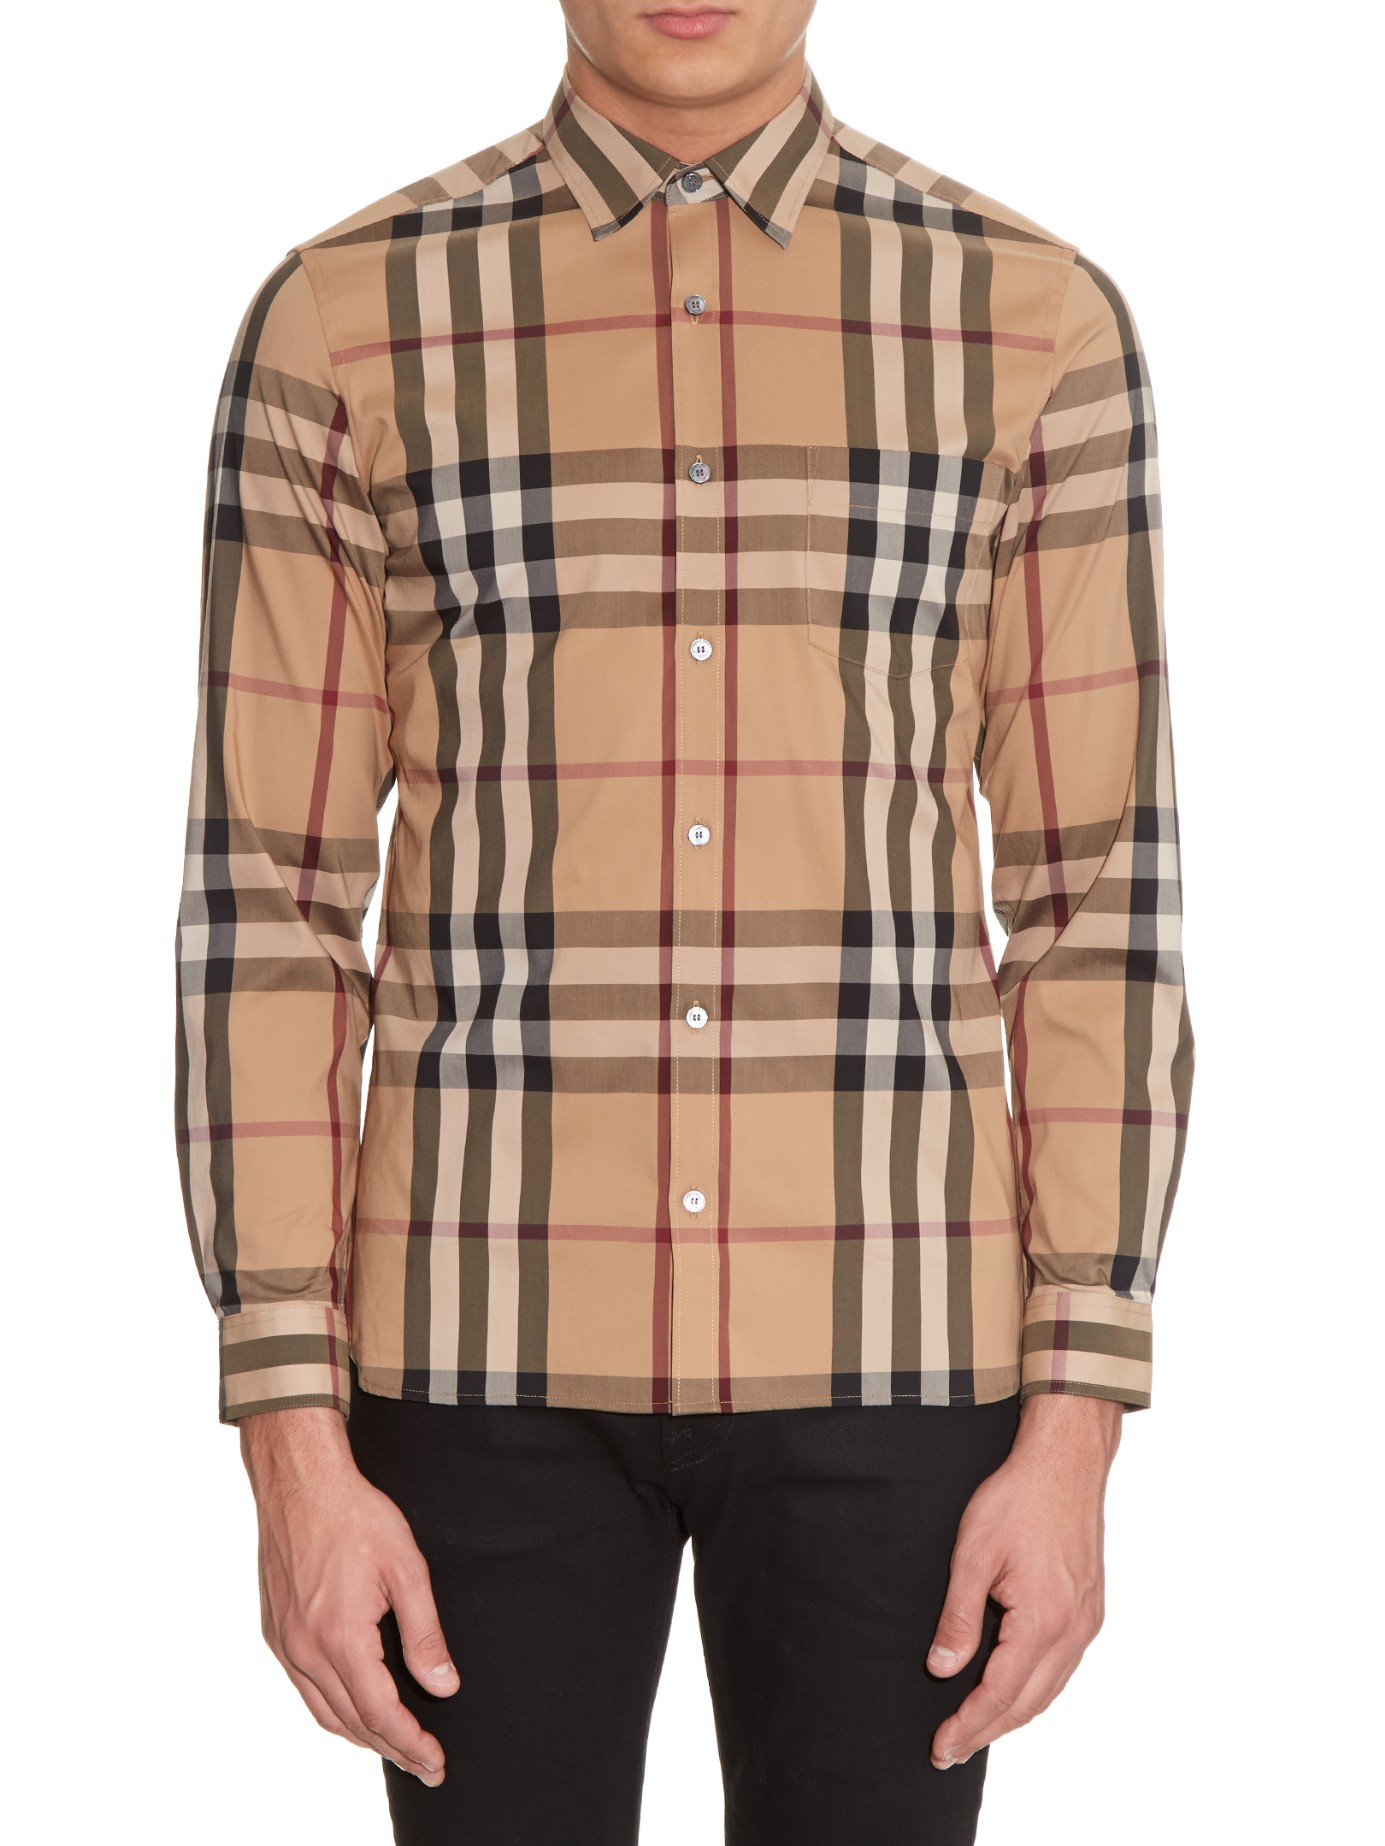 Burberry Mens Dress Shirts Sale Enam T Shirt